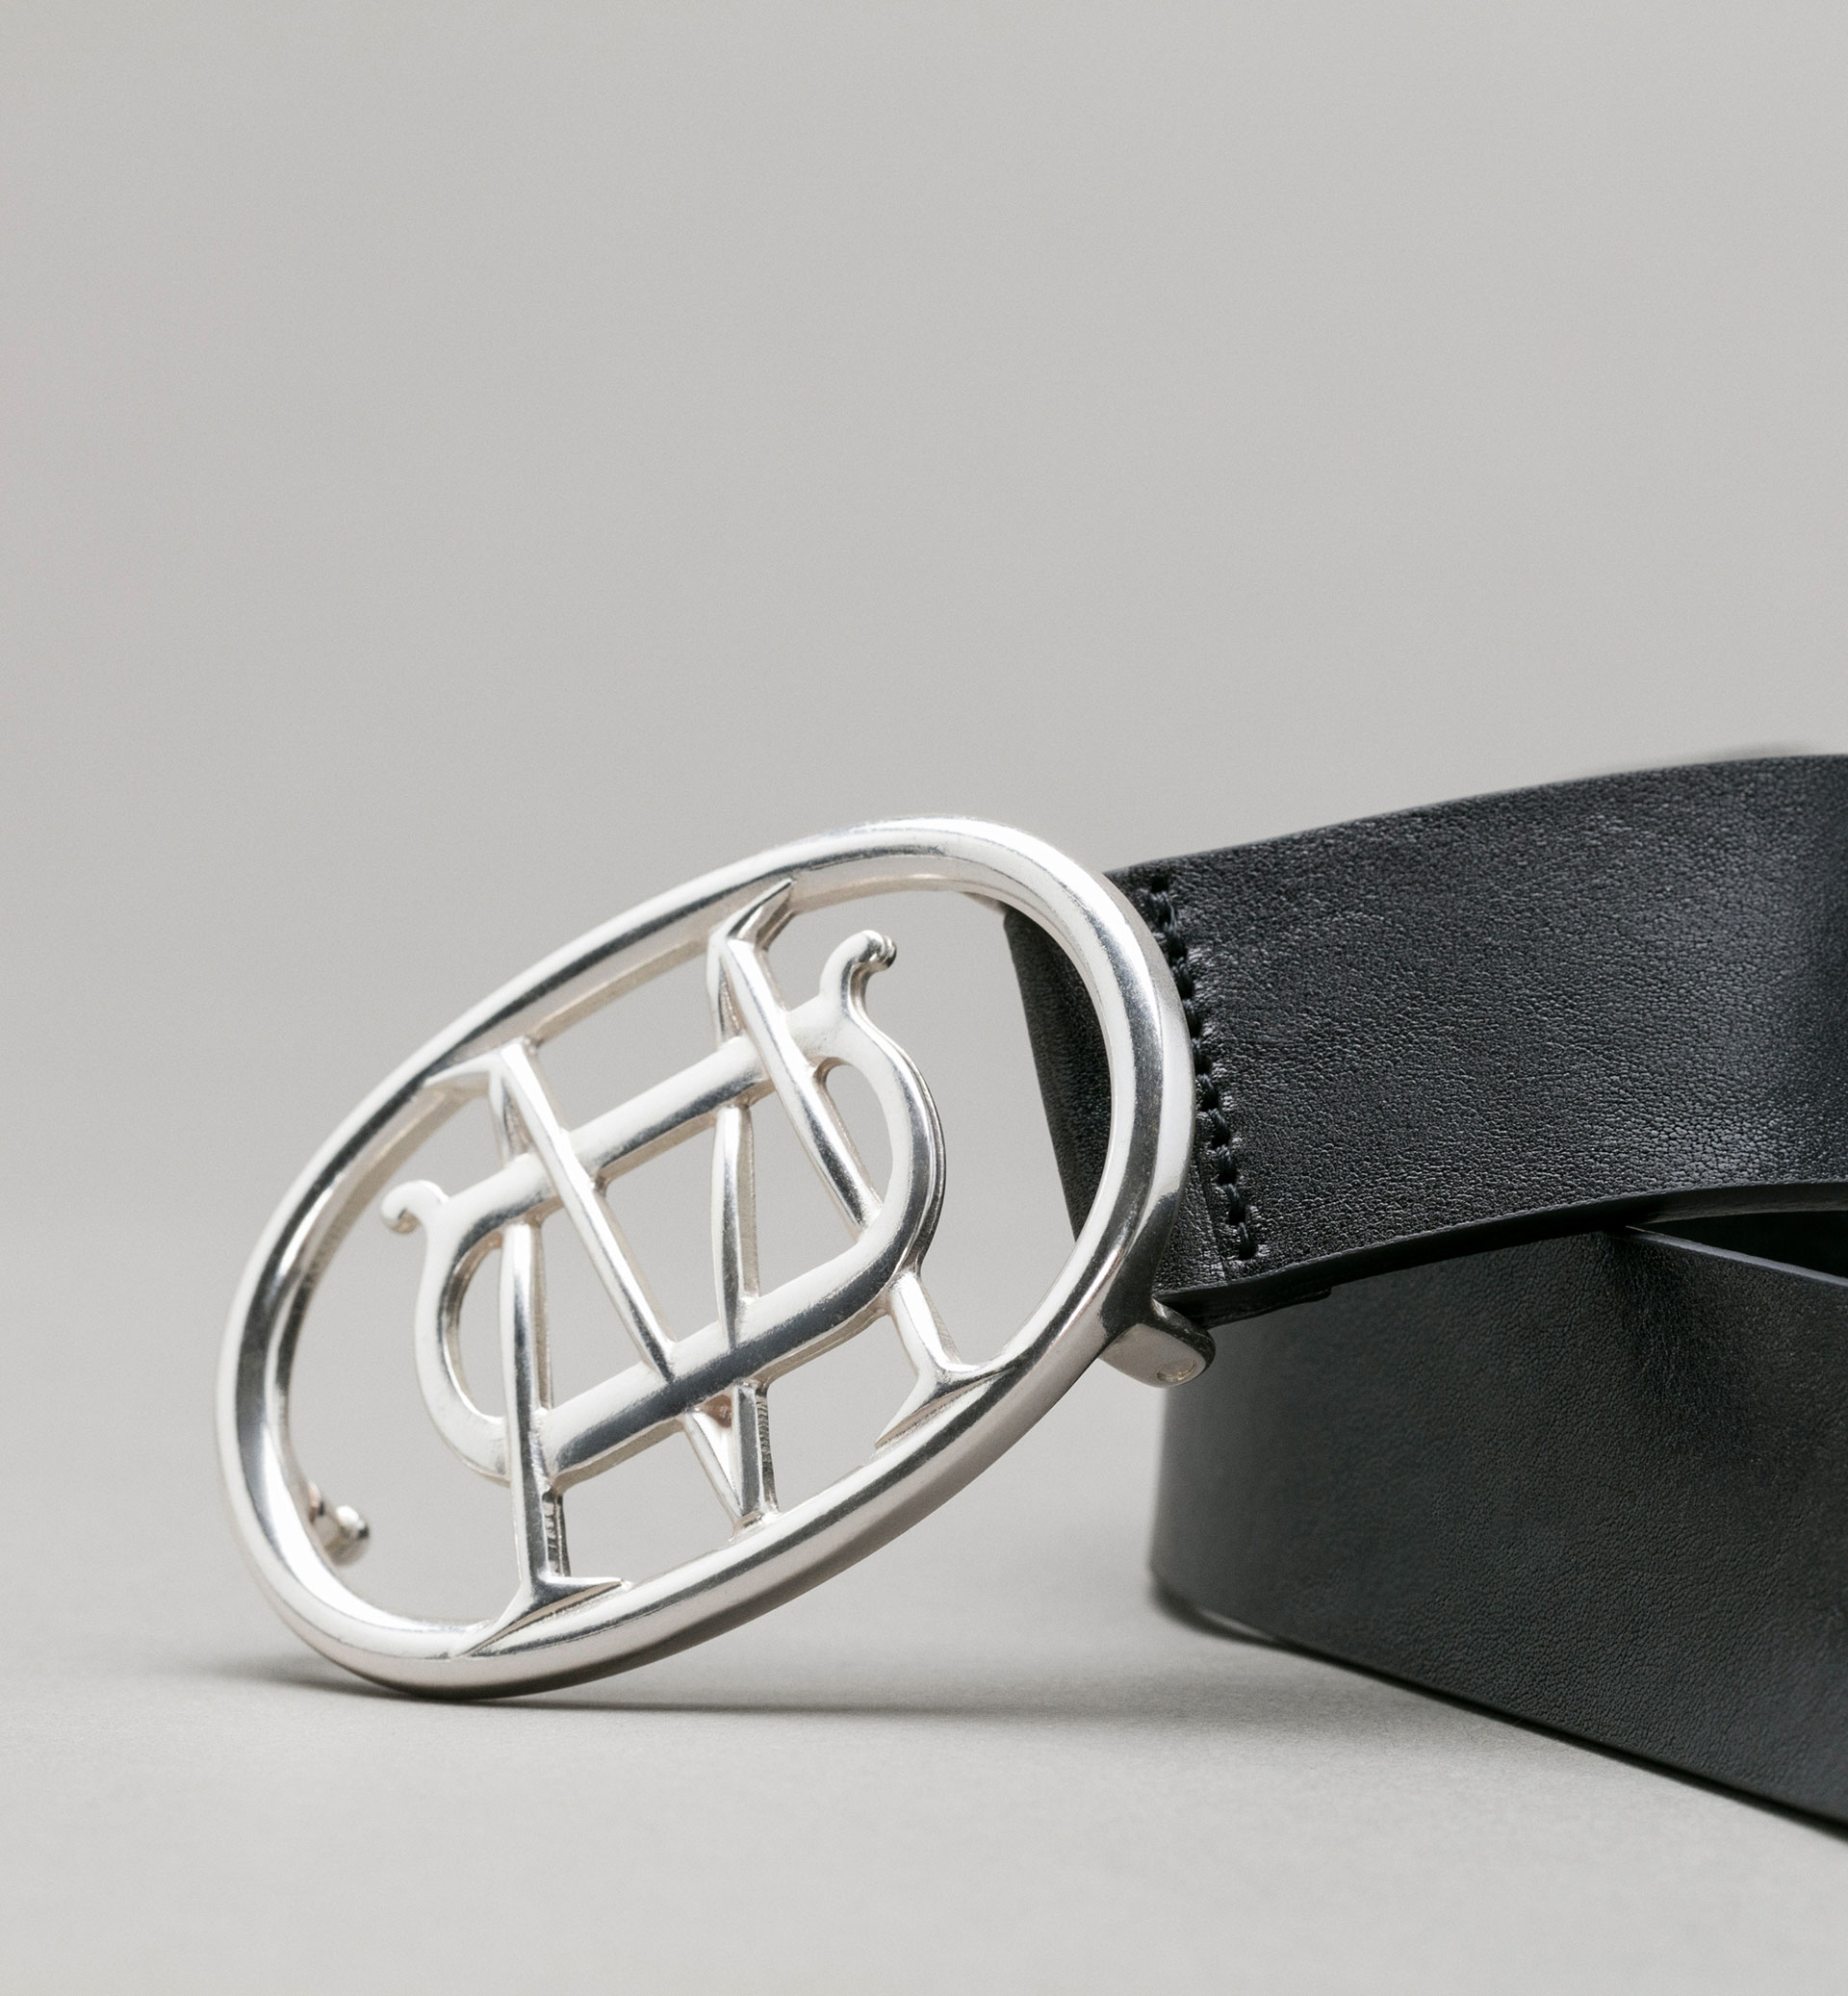 BELT WITH PERSONAL TAILORING LOGO BUCKLE